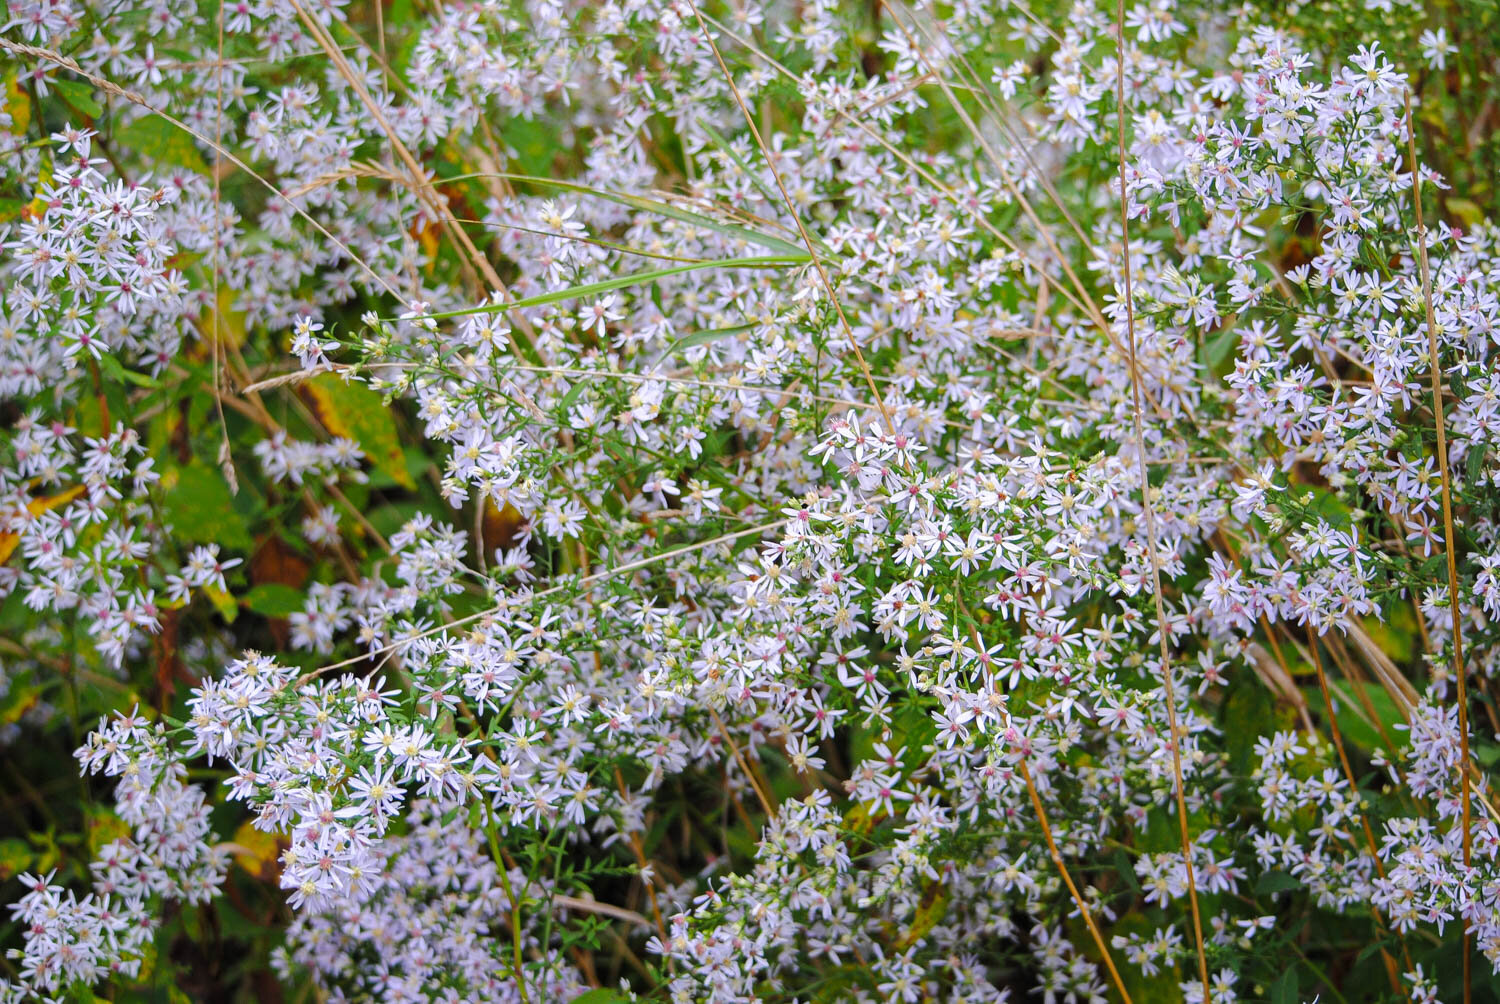 This darling aster looks to be  Symphyotrichum lateriflorum , but I could be wrong.